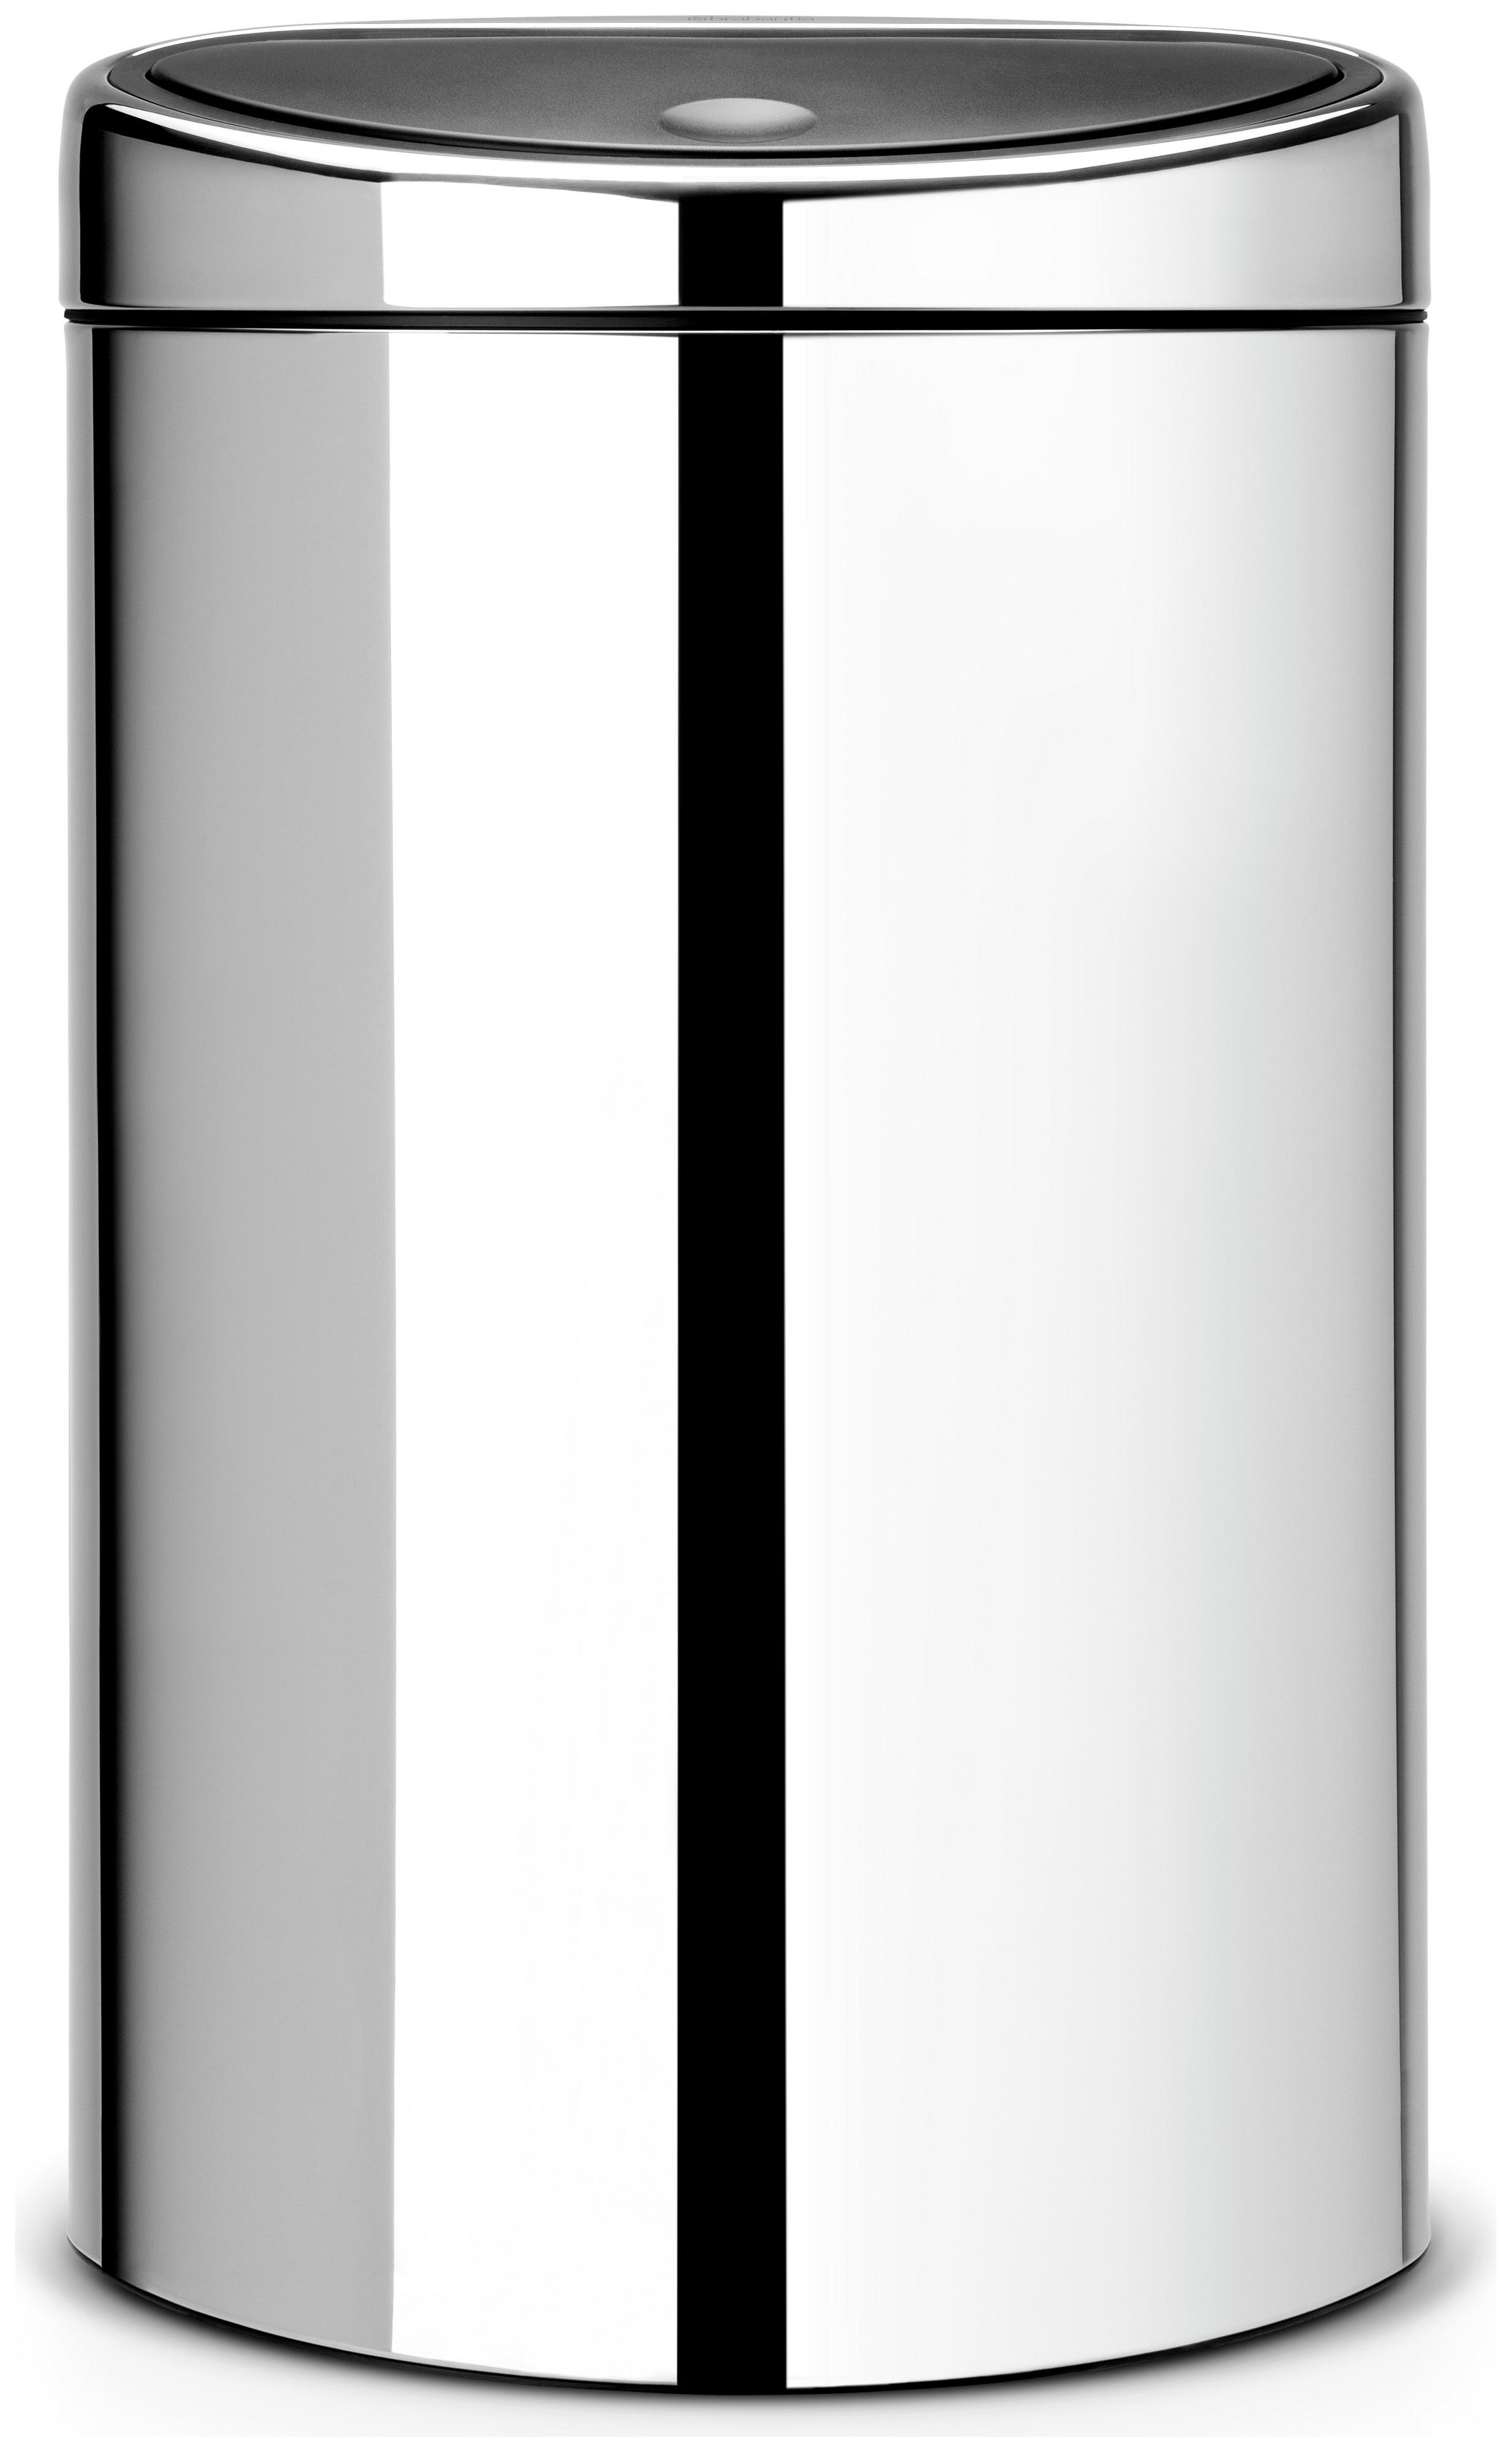 Image of Brabantia - 10/23L Twin Bin - Brilliant Steel